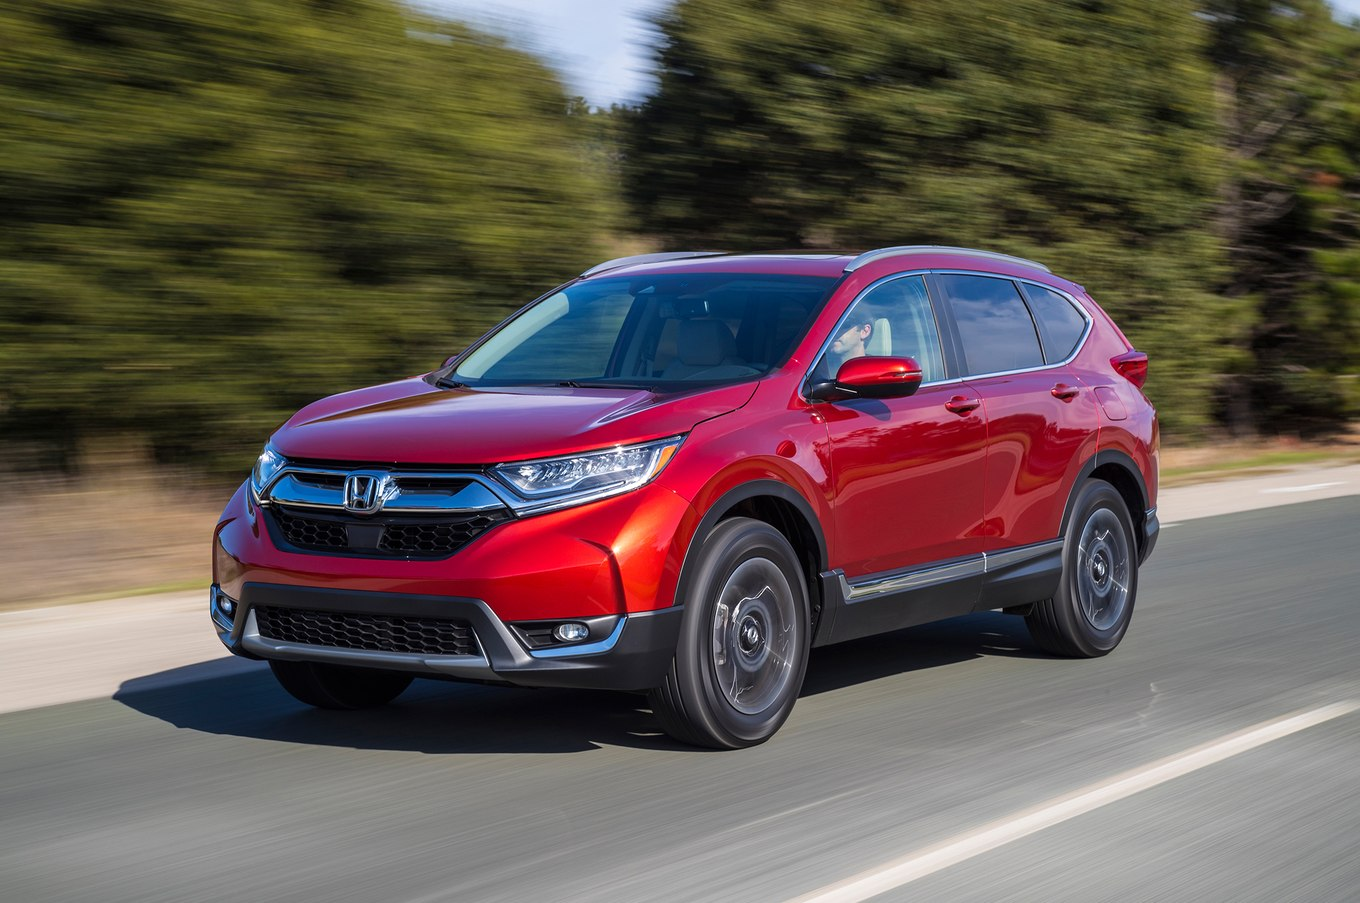 The 2018 Honda CR-V: Does it deliver the value that is worth the money?